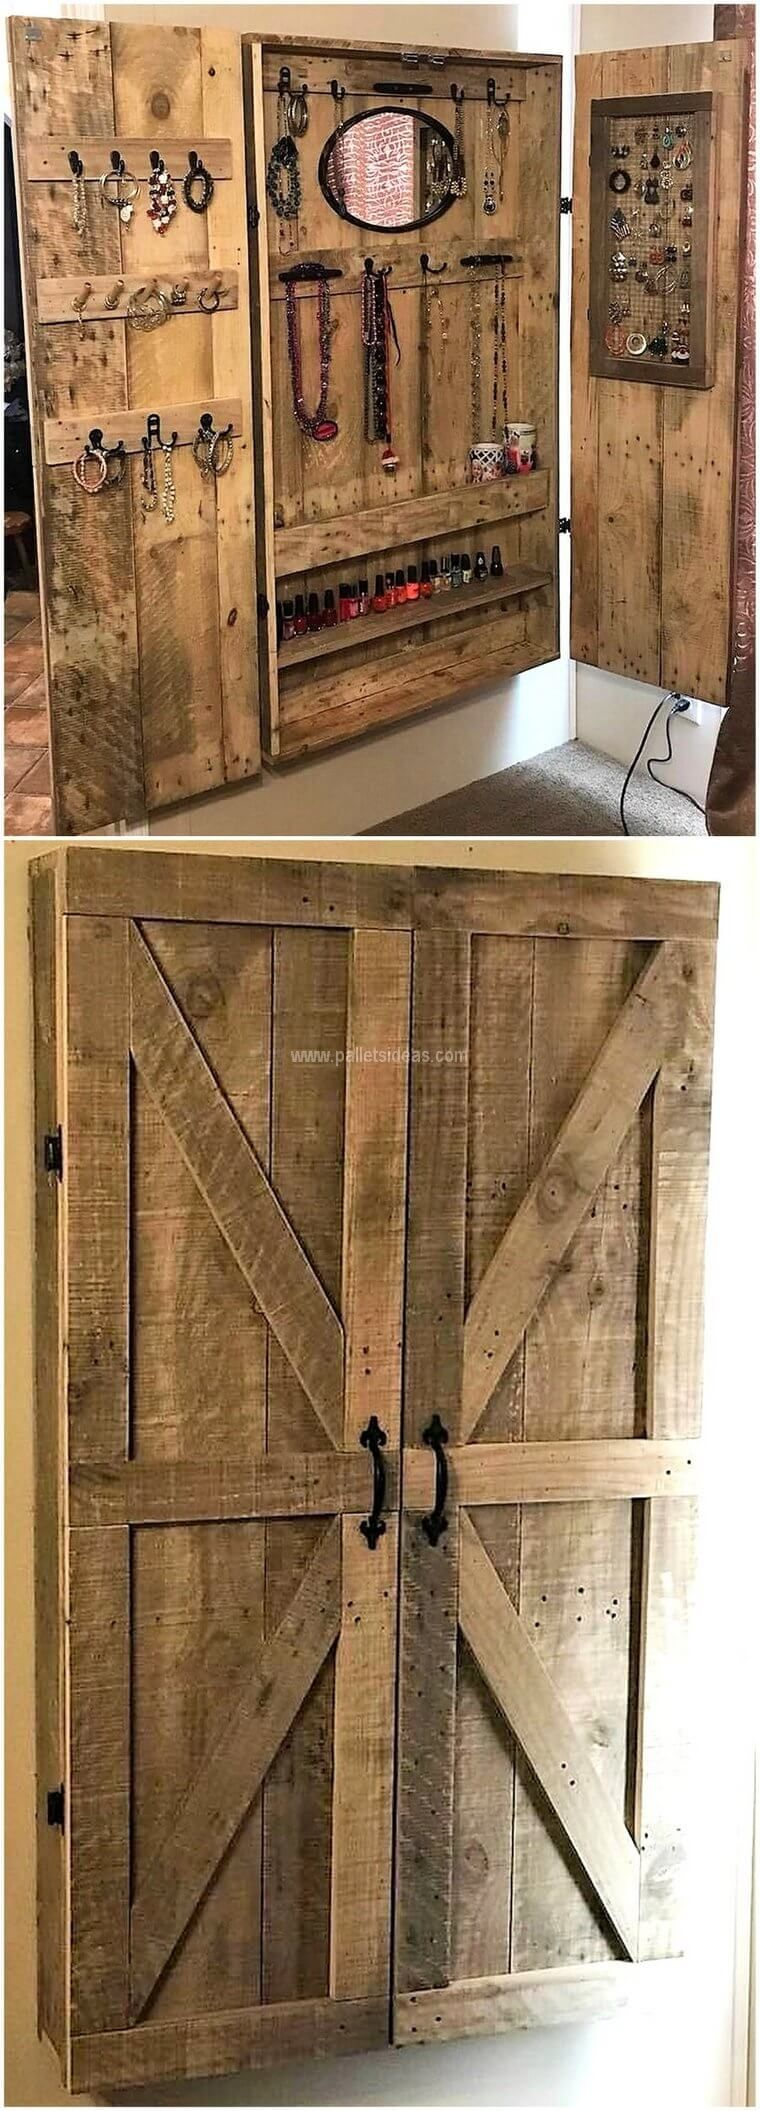 DIY with Pallets Ideas and Projects | Pallet Ideas